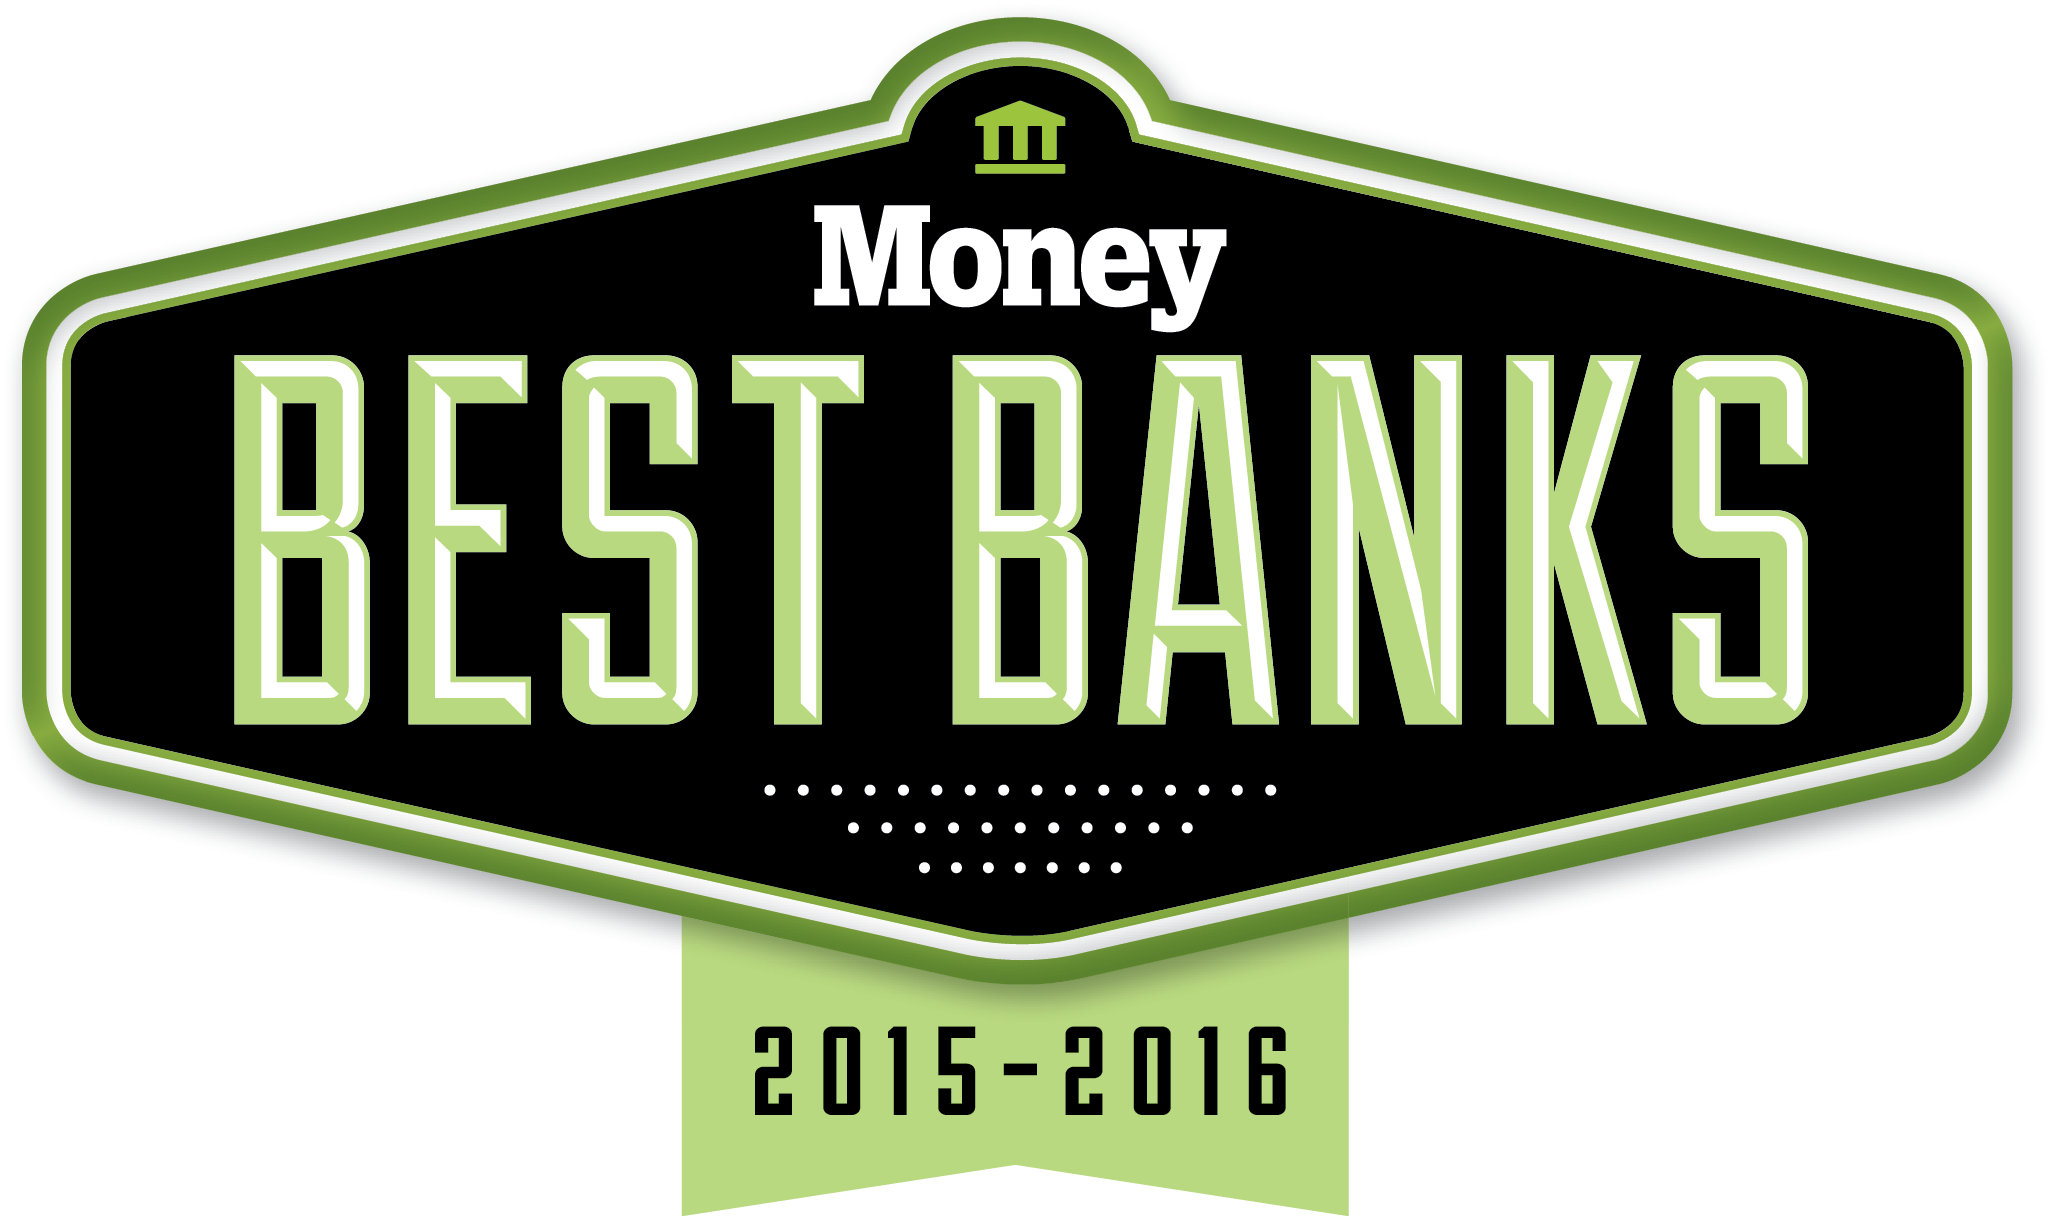 BestBanks_2015_2016_Color